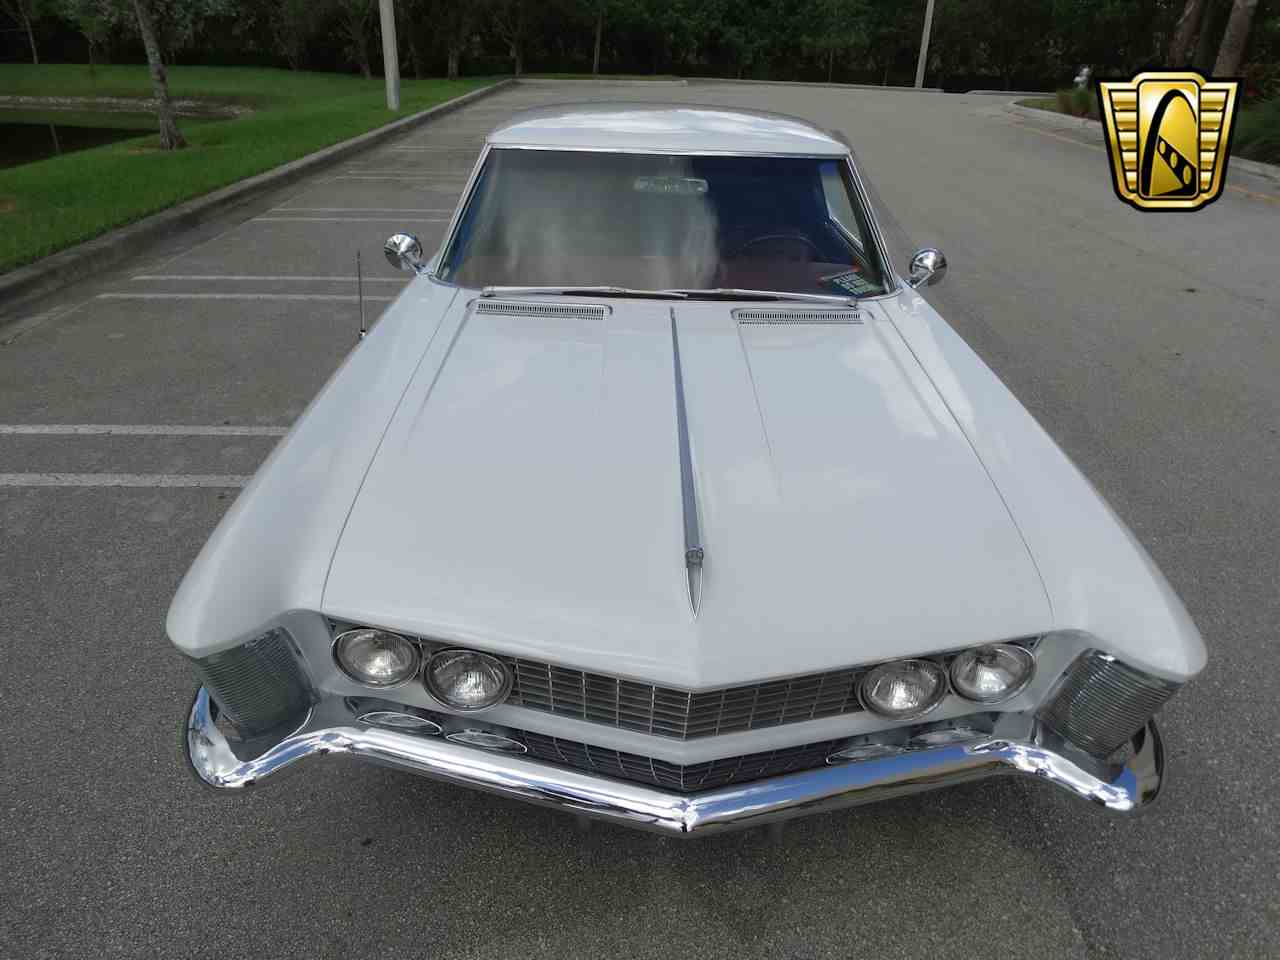 Large Picture of 1964 Buick Riviera located in Coral Springs Florida - $22,595.00 Offered by Gateway Classic Cars - Fort Lauderdale - LUJQ